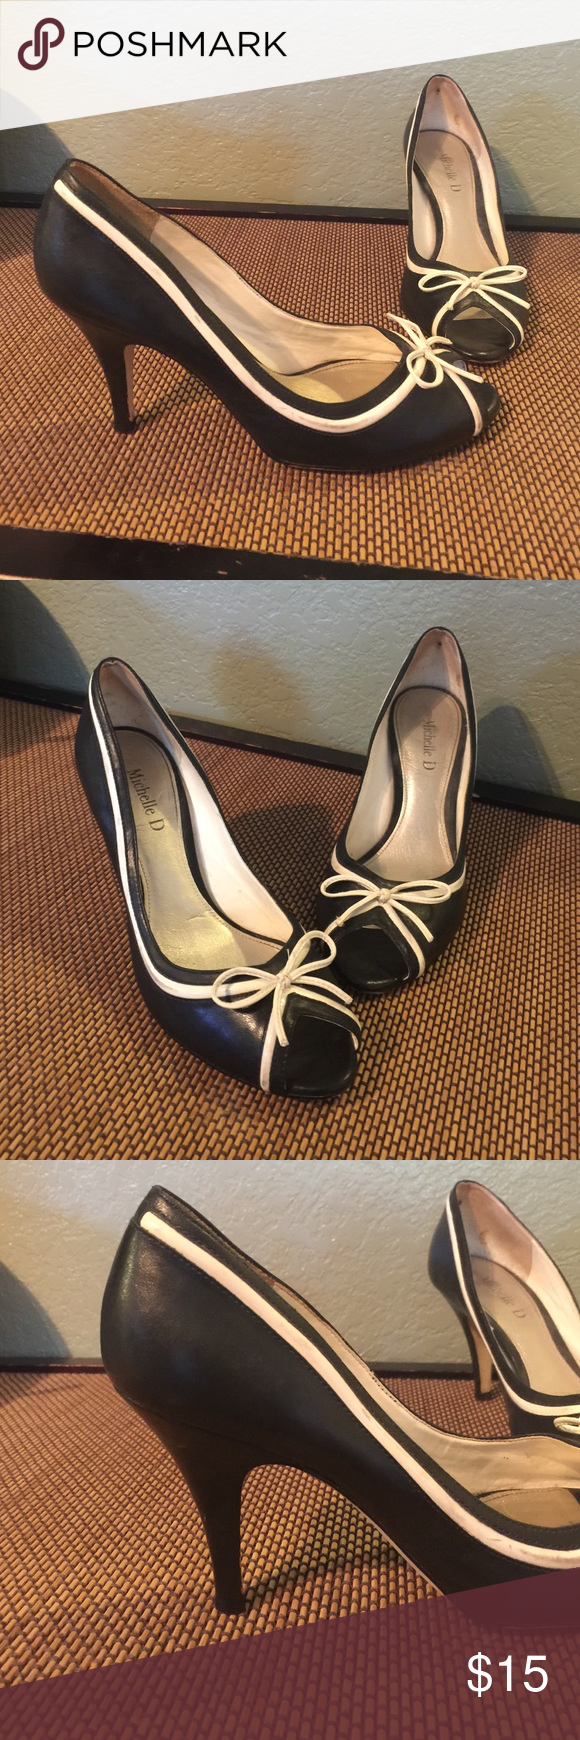 Black and White Bow Heels Peep toe black heels with white trim and bow. Have a cute retro look to them. Gently used. I always ship within 1-2 days! Michelle D Shoes Heels